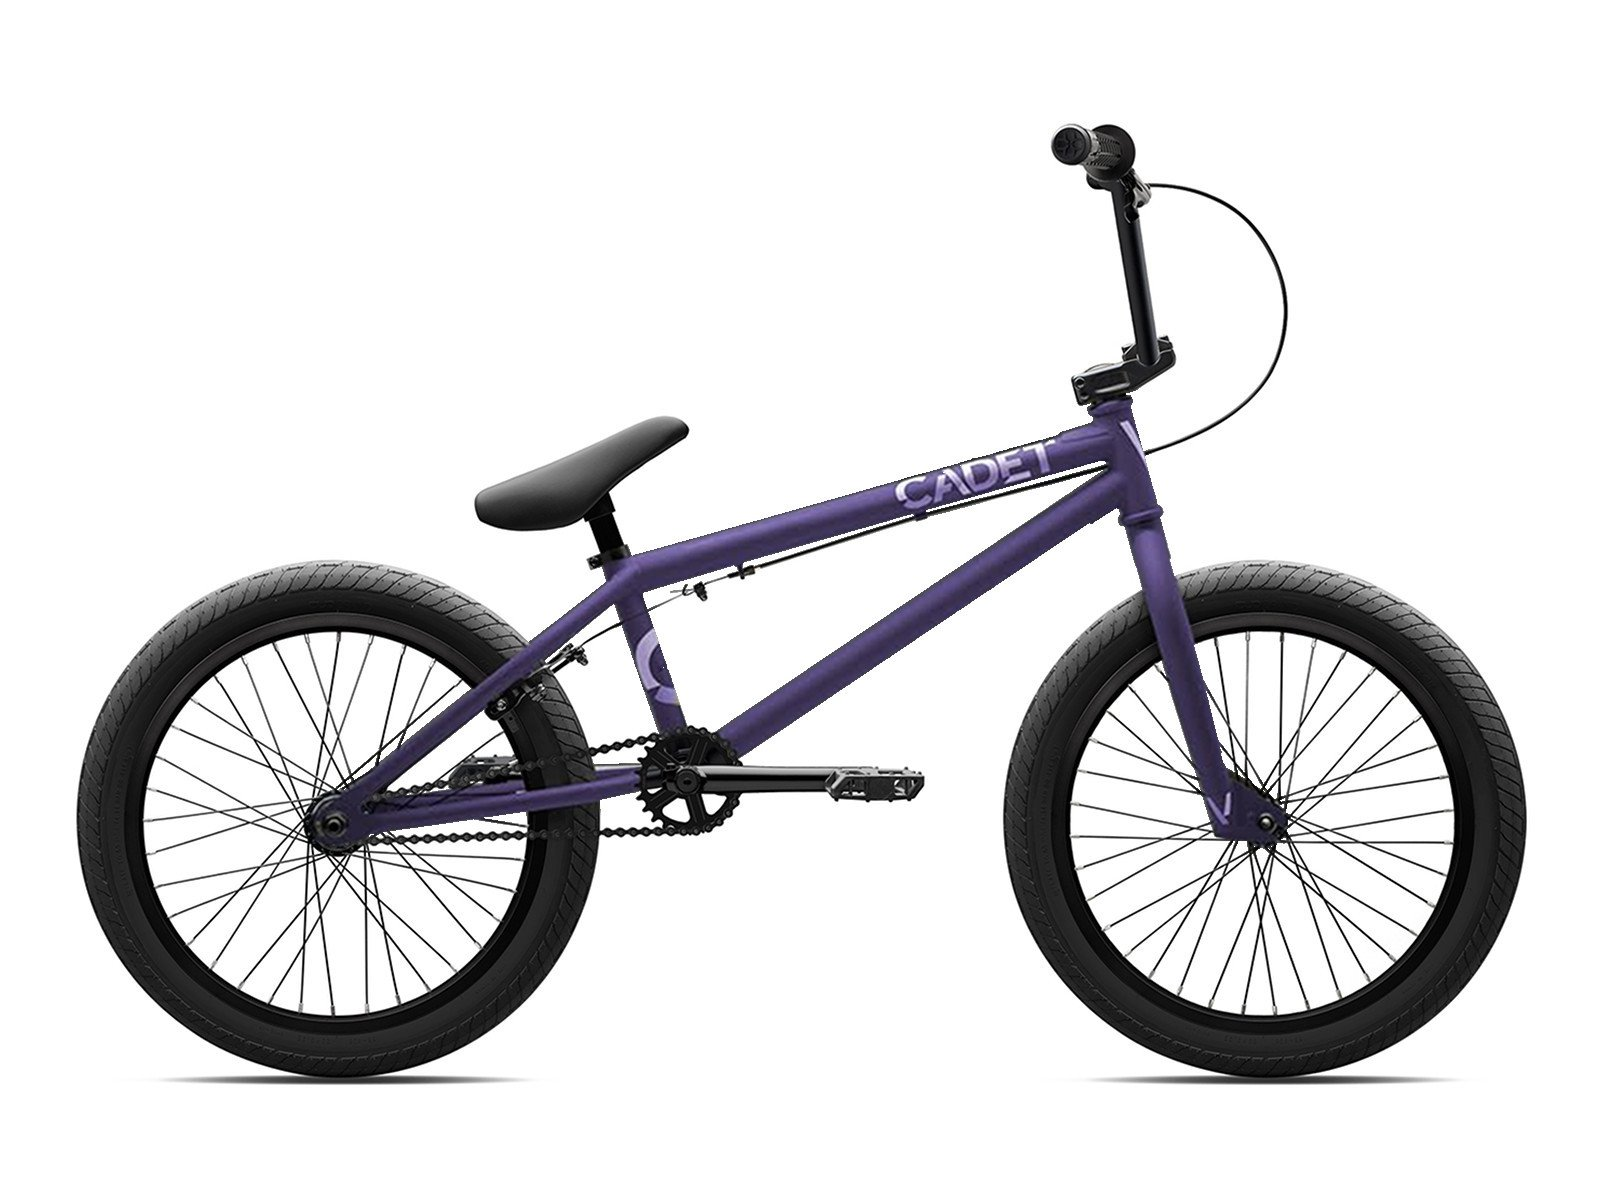 Verde bmx cadet 2017 bmx rad matt purple kunstform for Bmx store